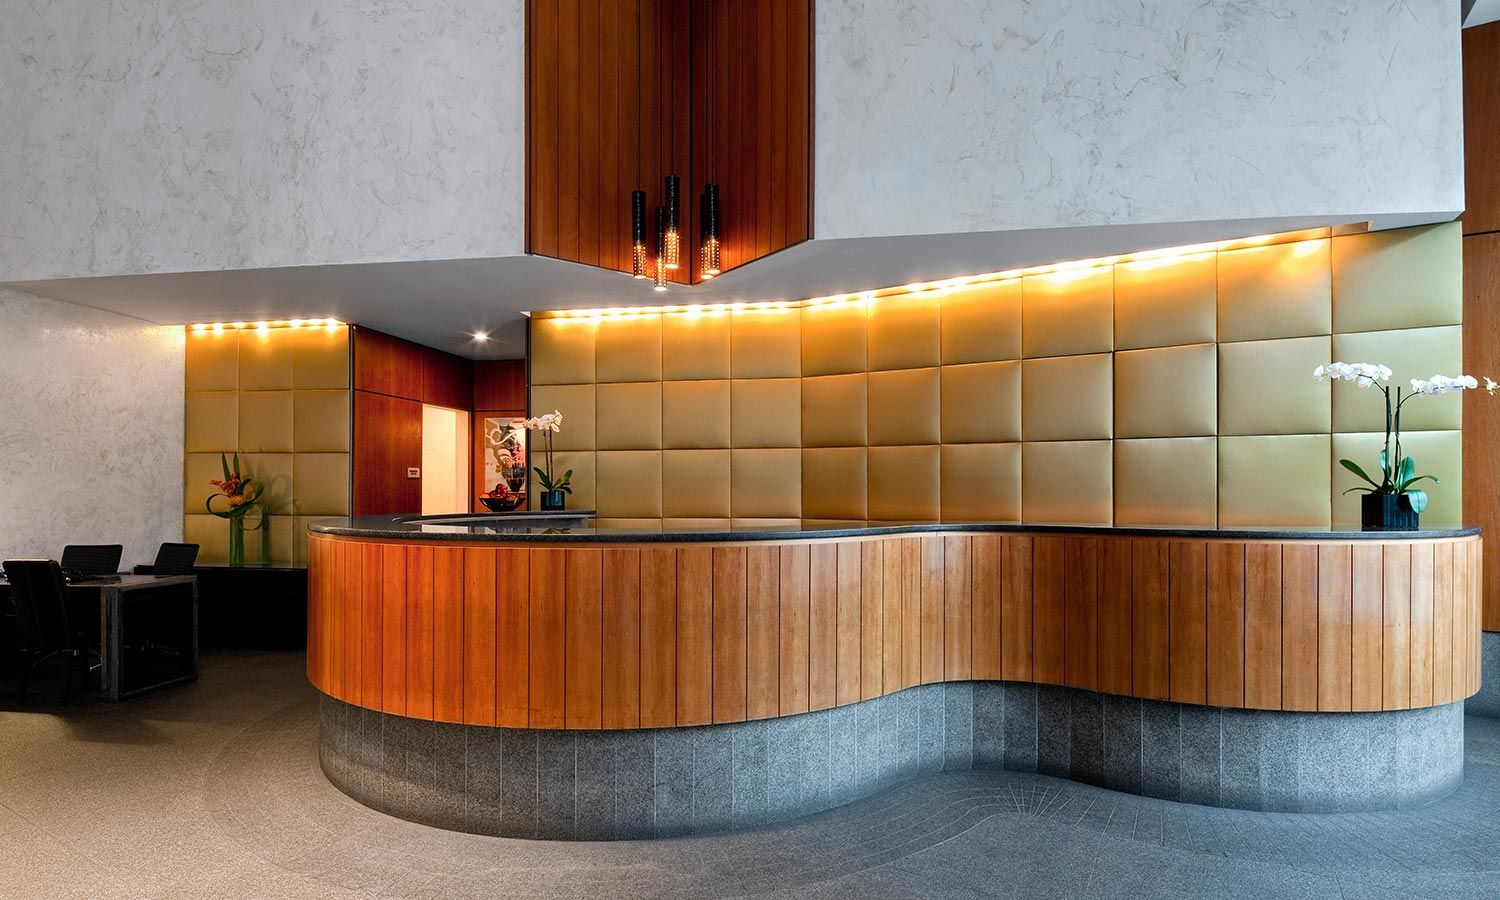 Hotel Foyer Table : Modern lobby front desk interior design architecture